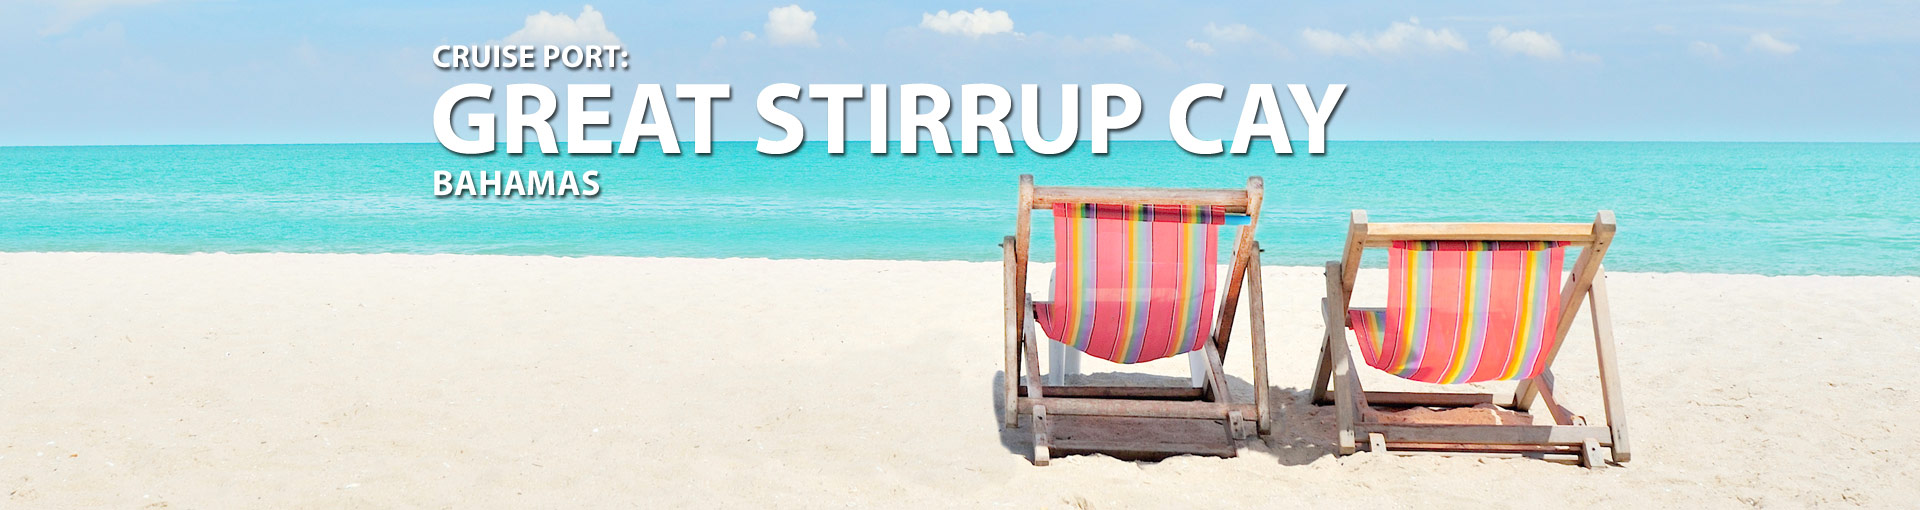 Cruises to Great Stirrup Cay, Bahamas